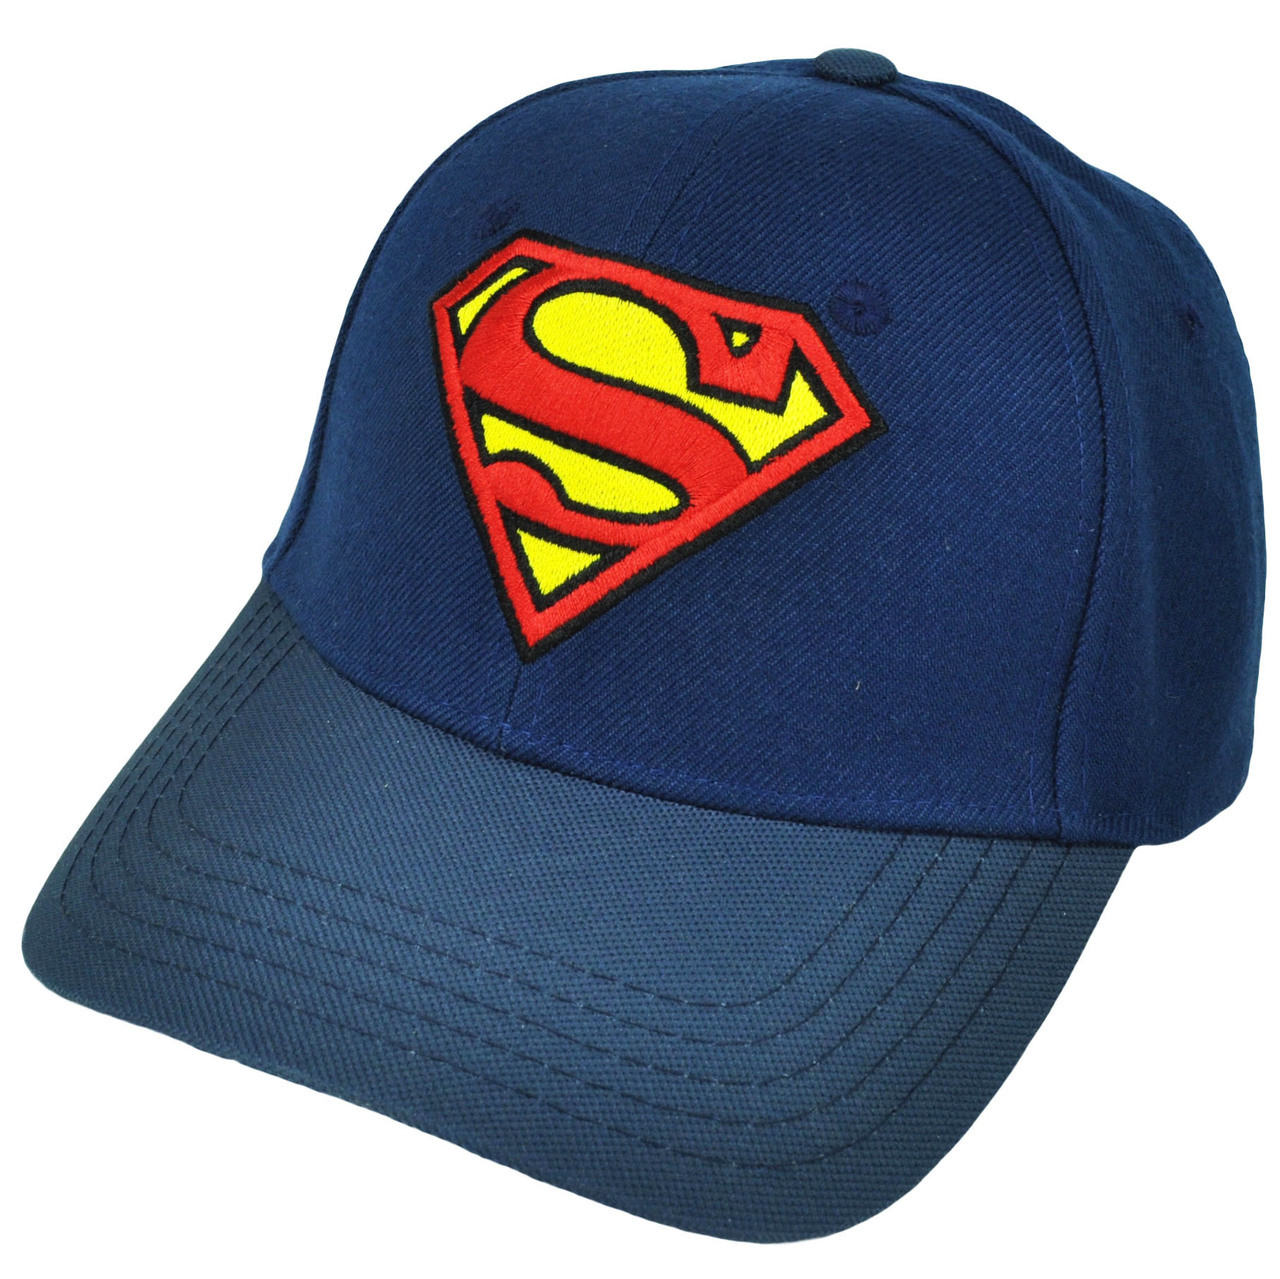 0267af132 Superman Flex Fit Small Super Hero Blue Cartoon Hat Cap DC Comics Movie  Justice - Cap Store Online.com